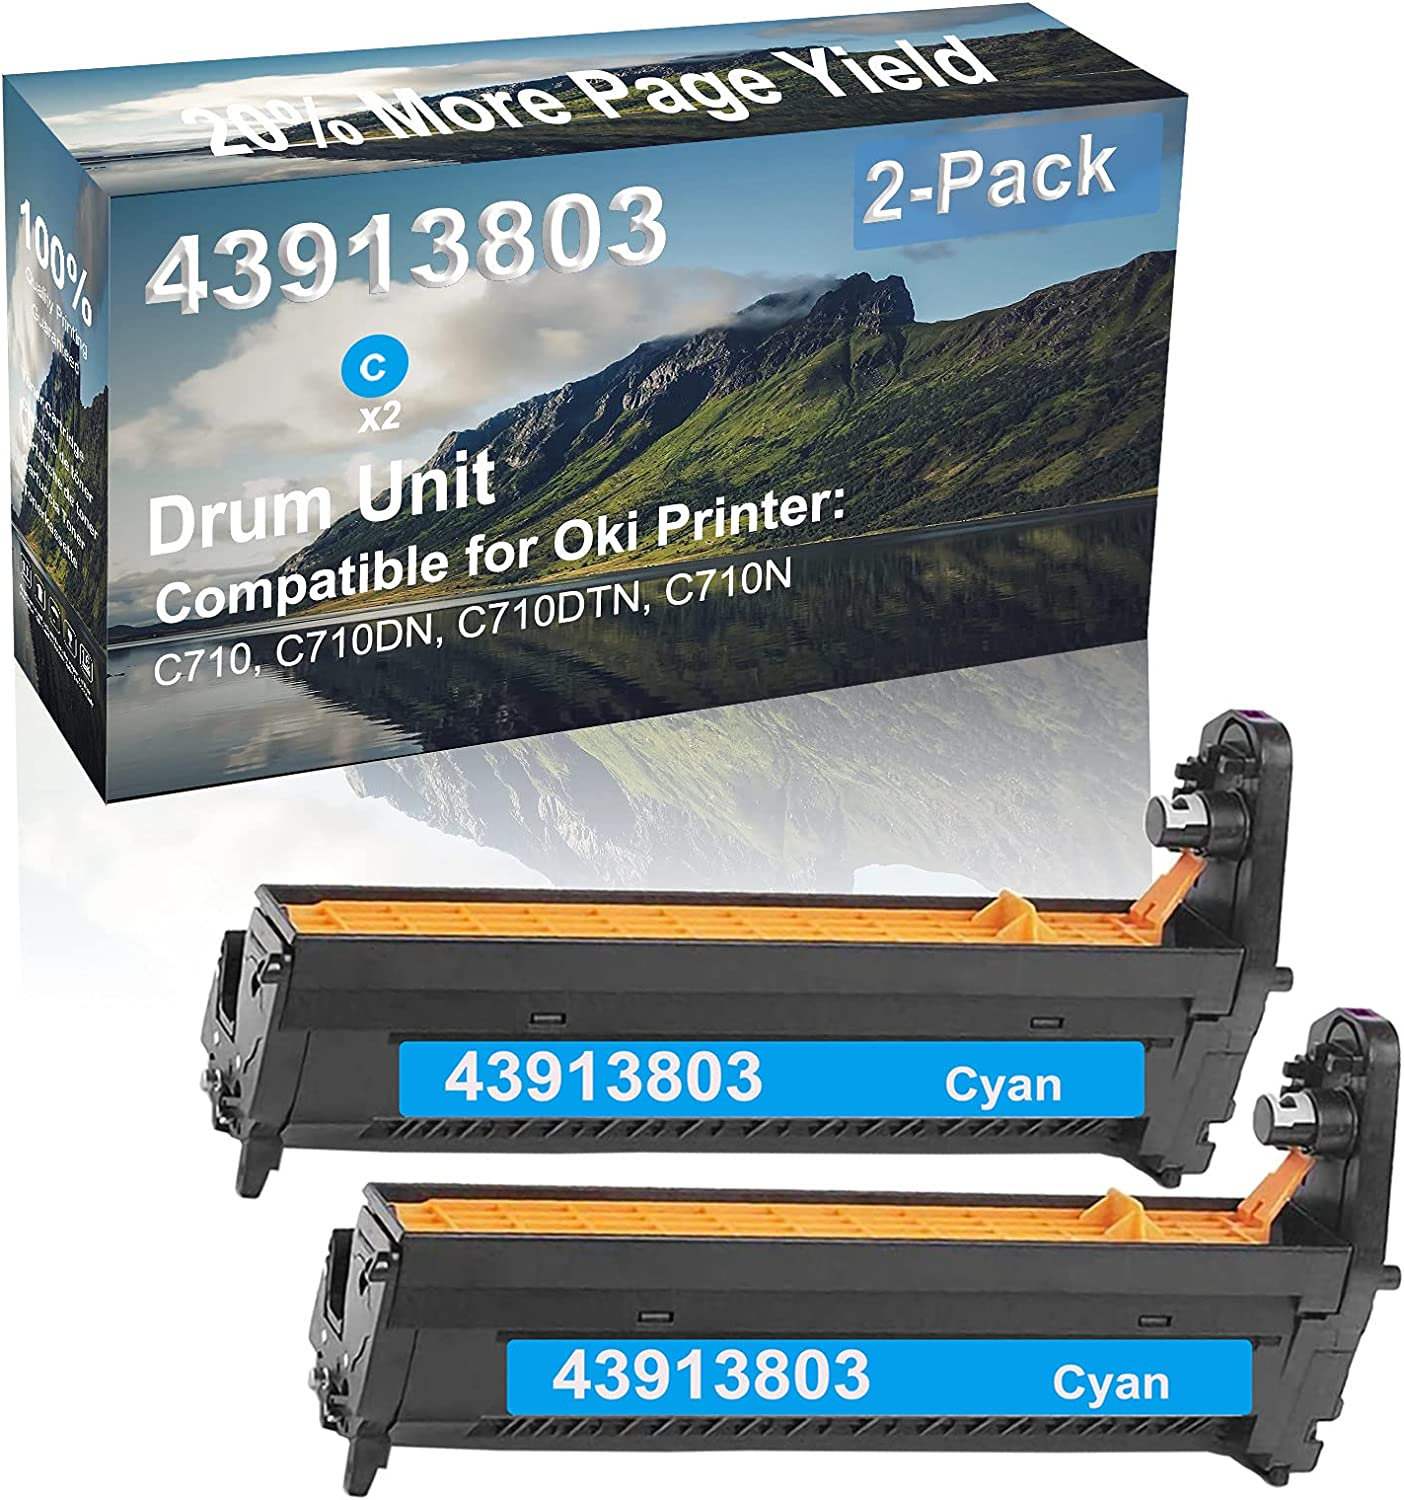 2-Pack (Cyan) Compatible High Capacity 43913803 Drum Unit Used for Oki C710, C710DN, C710DTN, C710N Printer